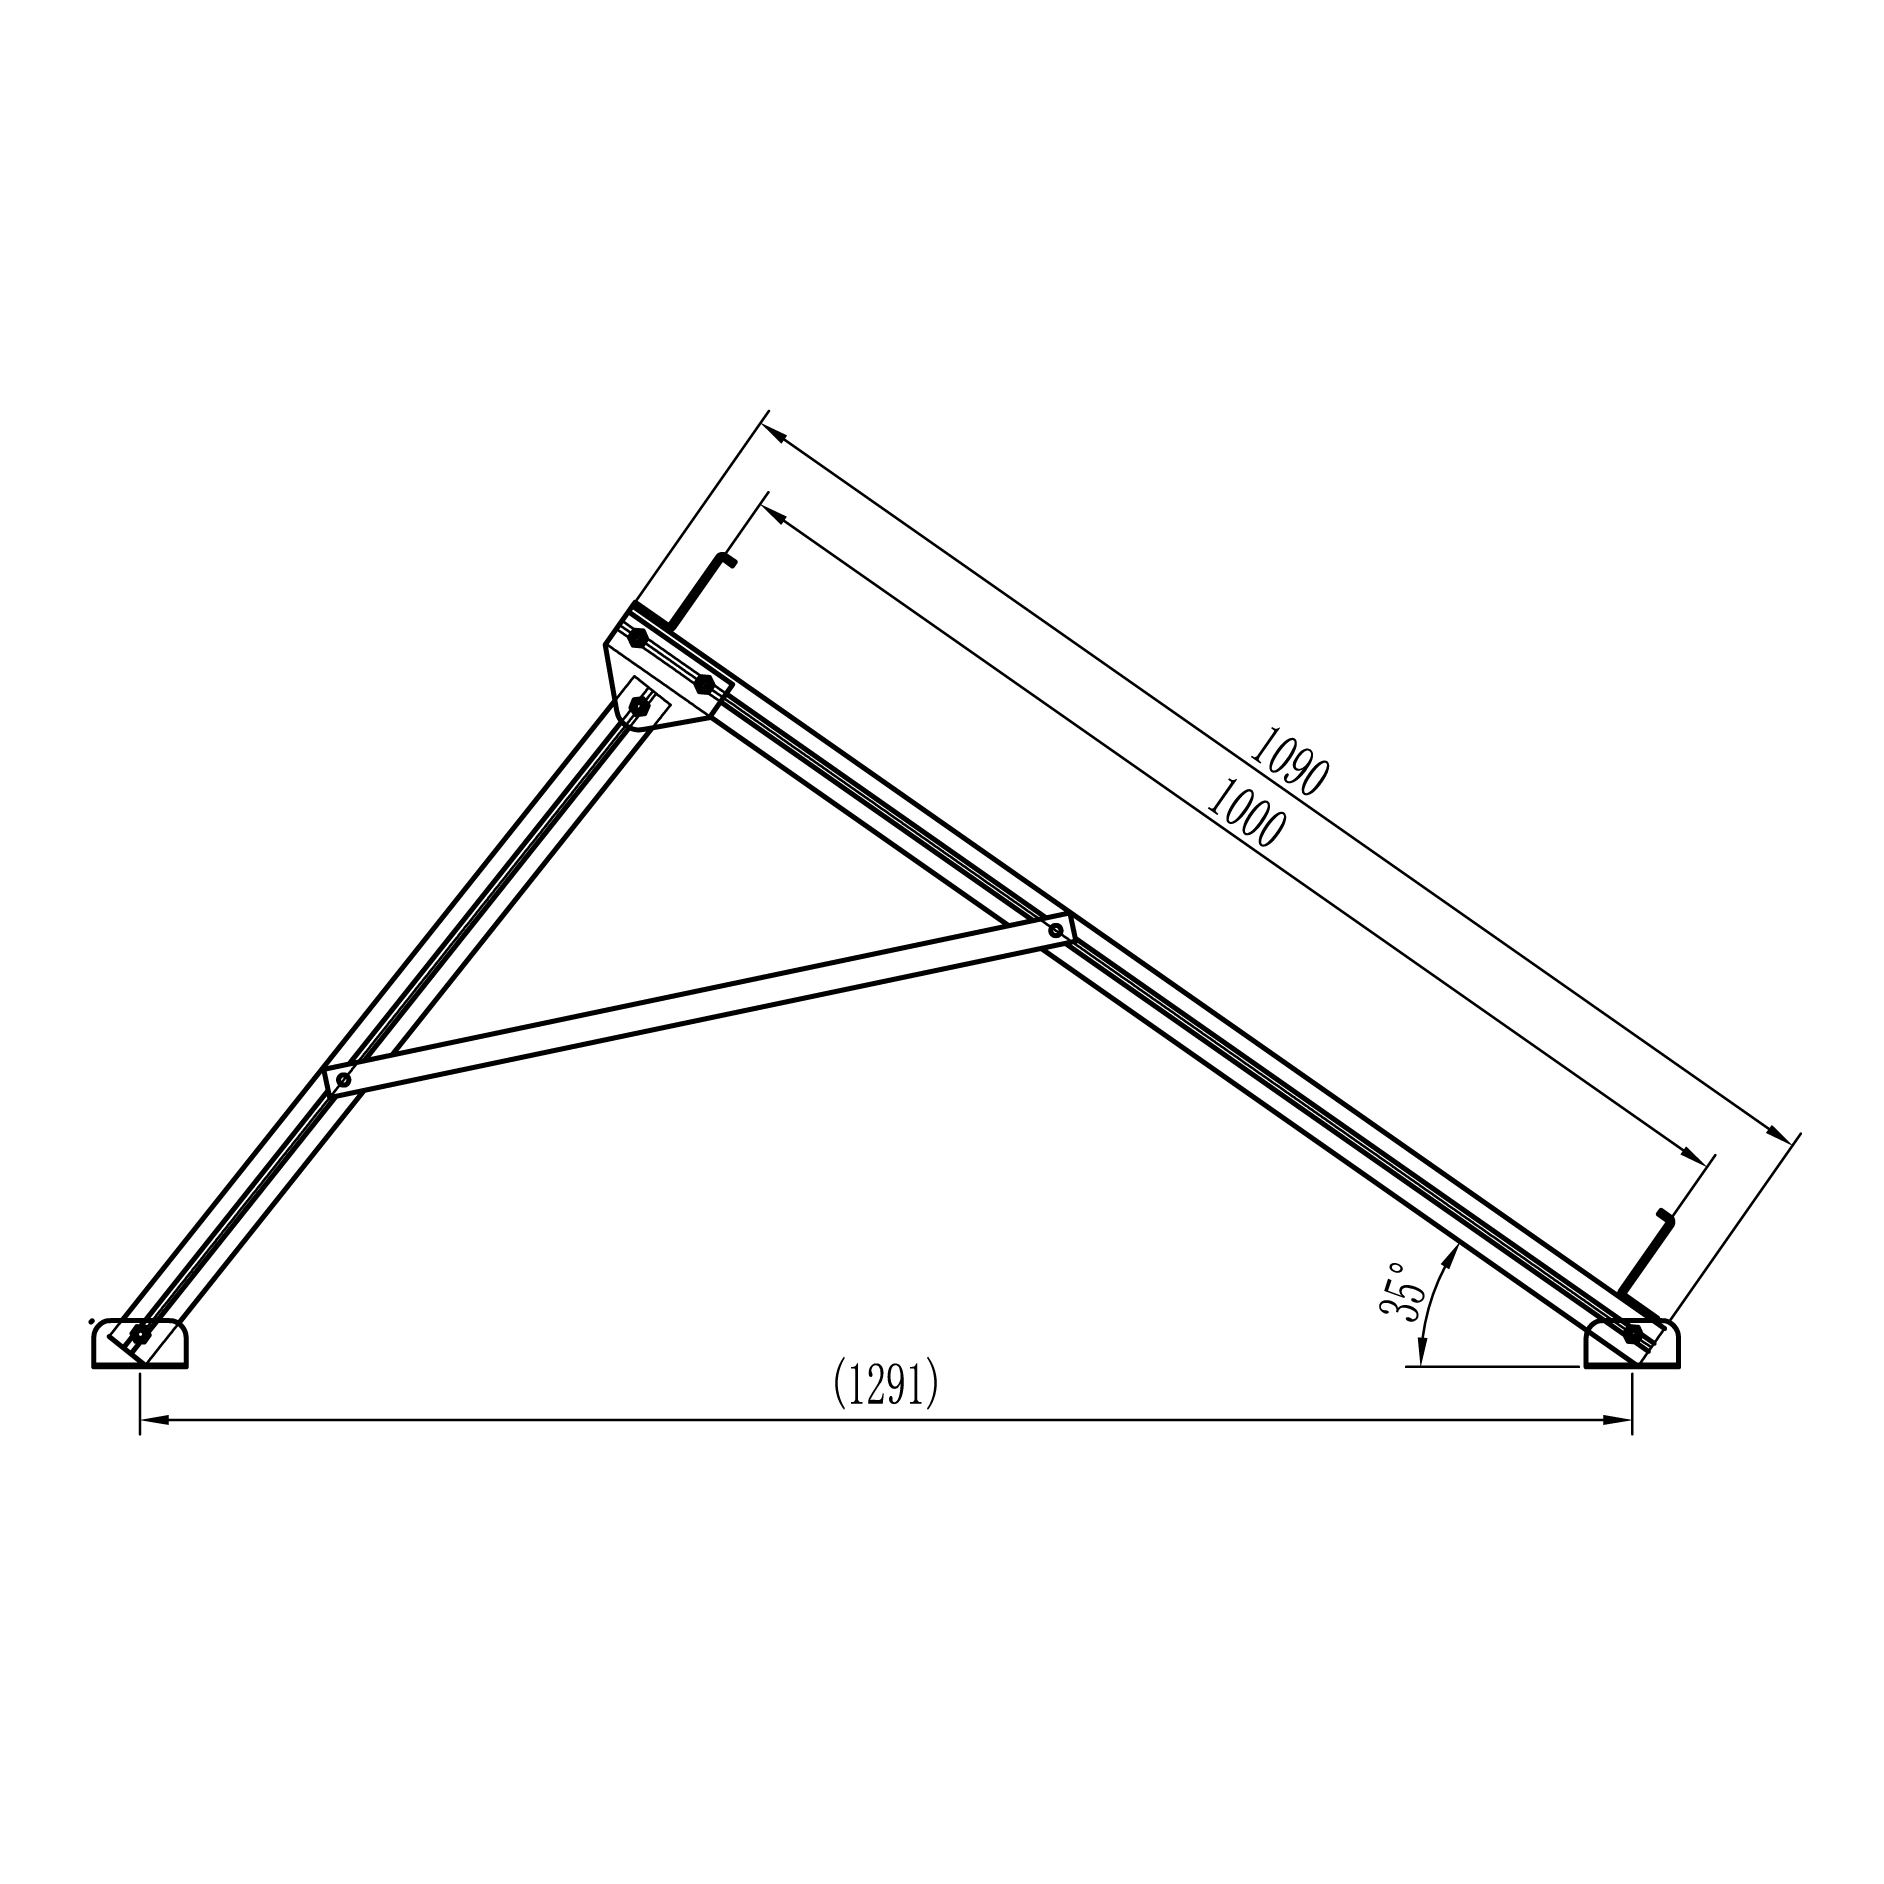 frame diagram for flat plate collector